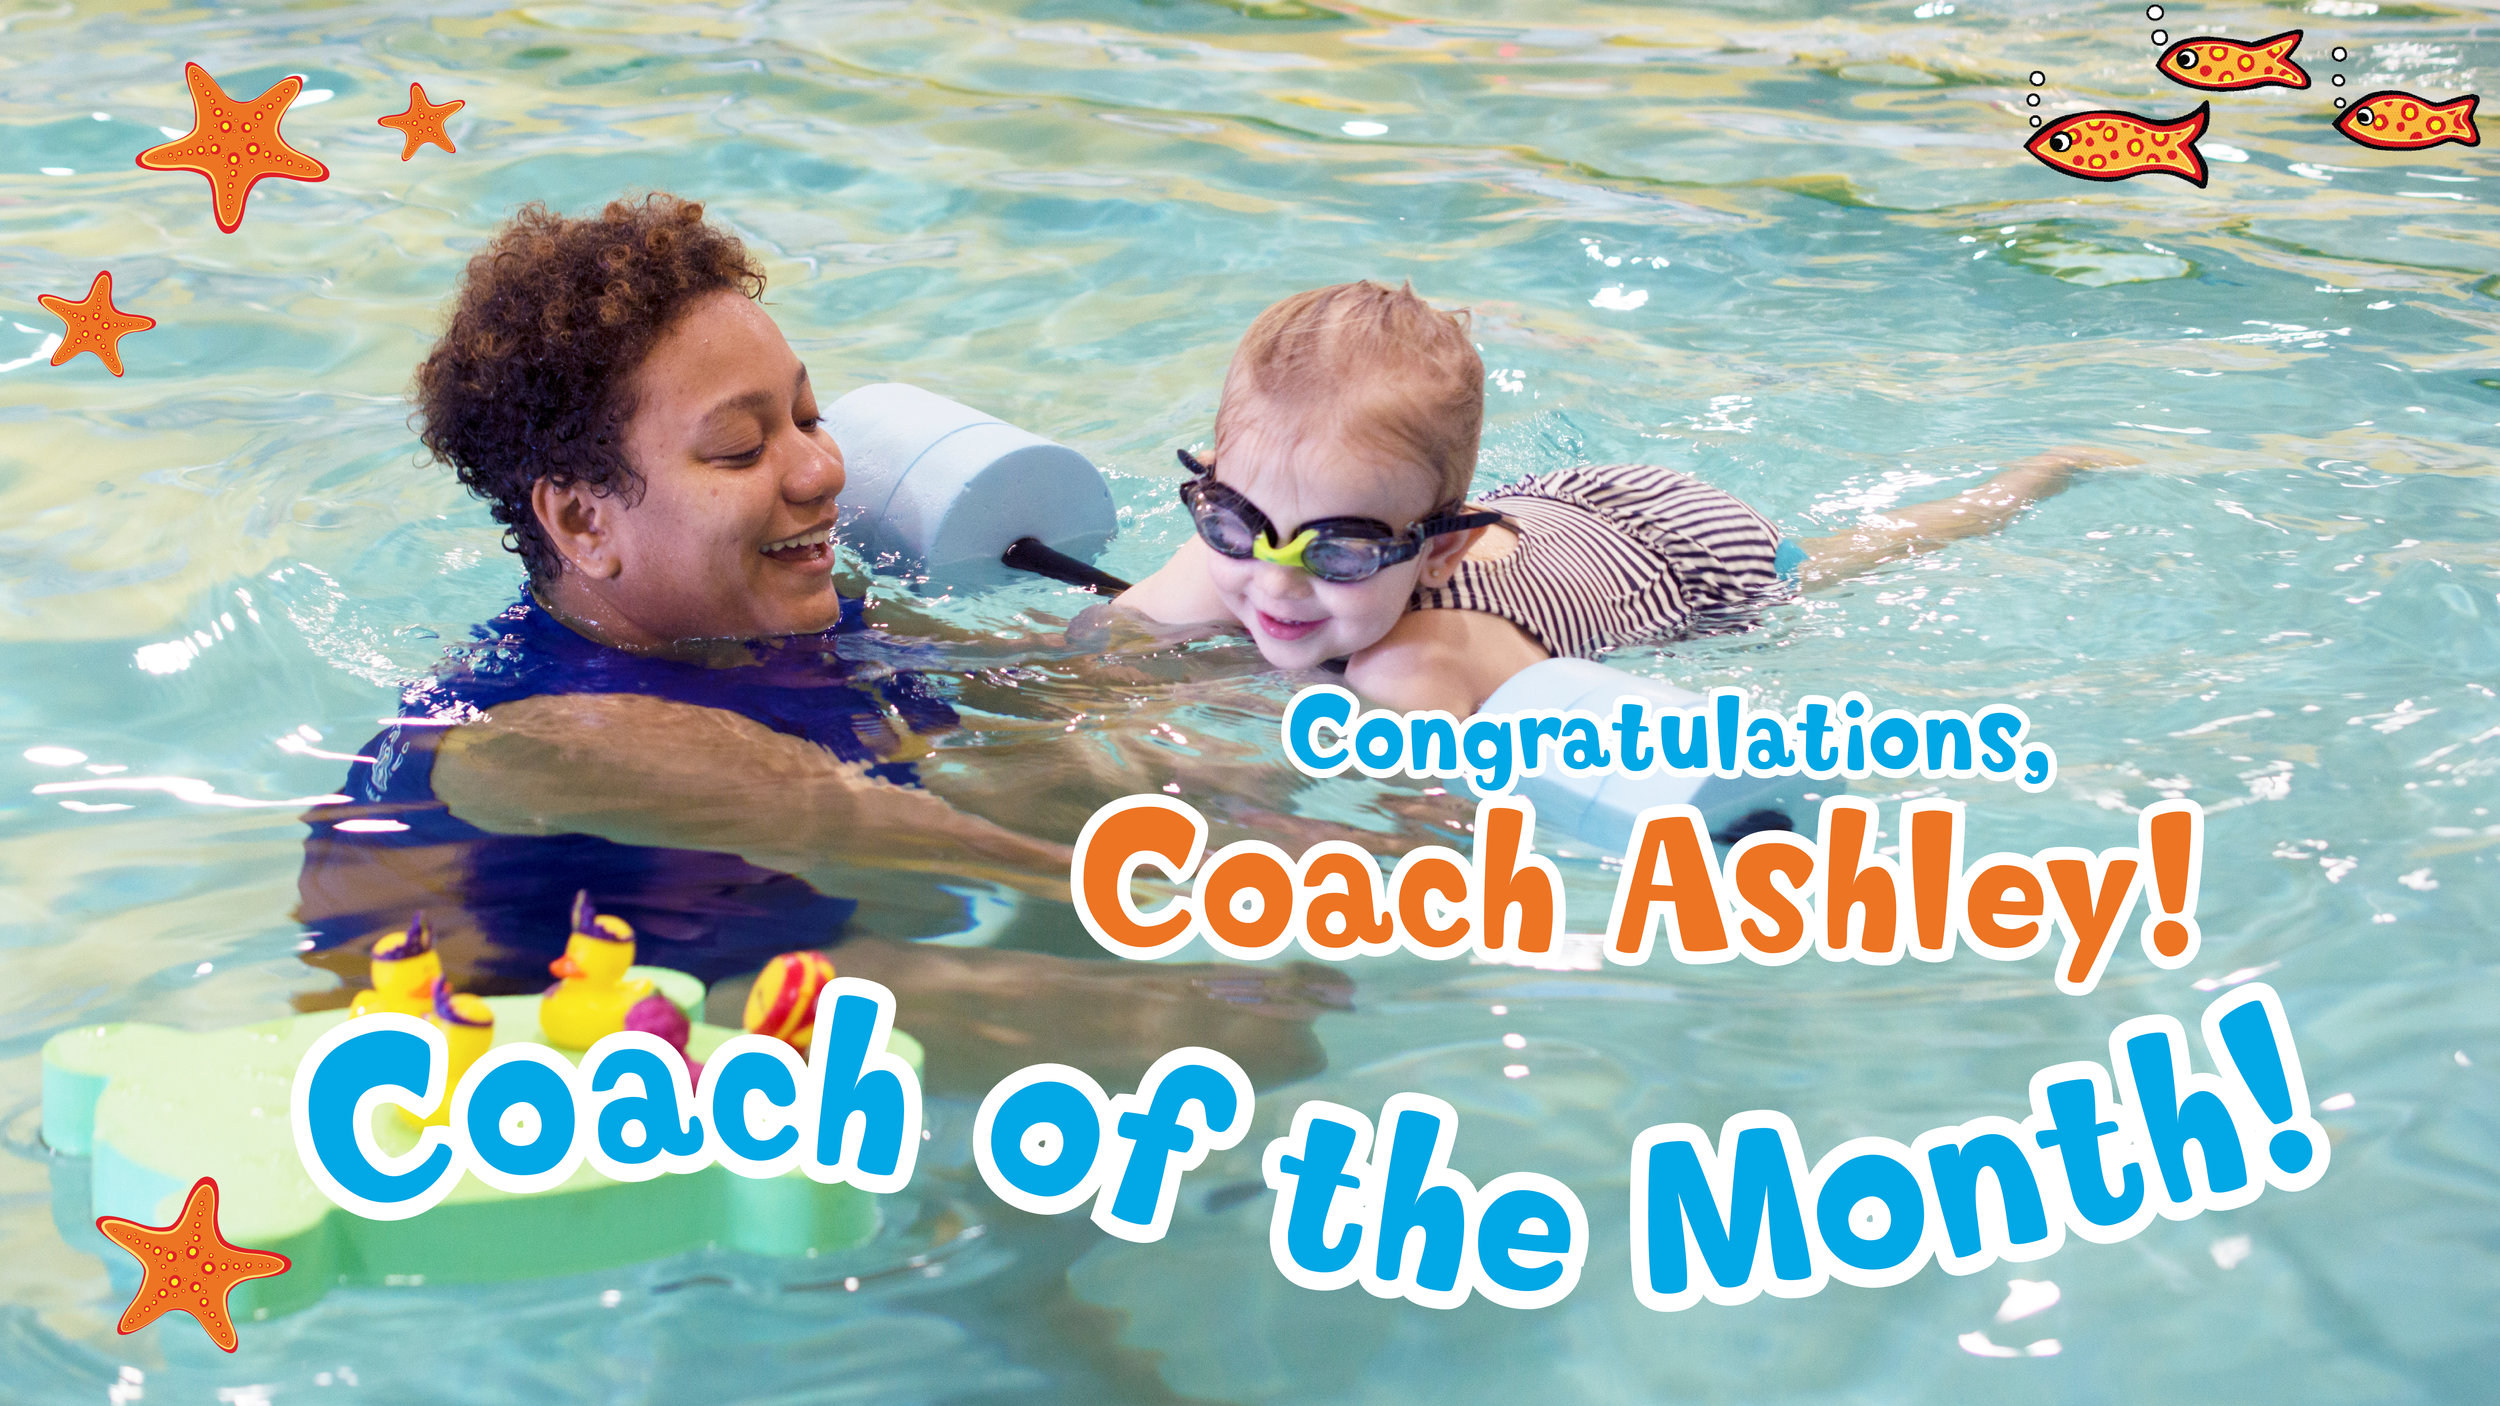 Coach of the Month Ashley (1).jpg